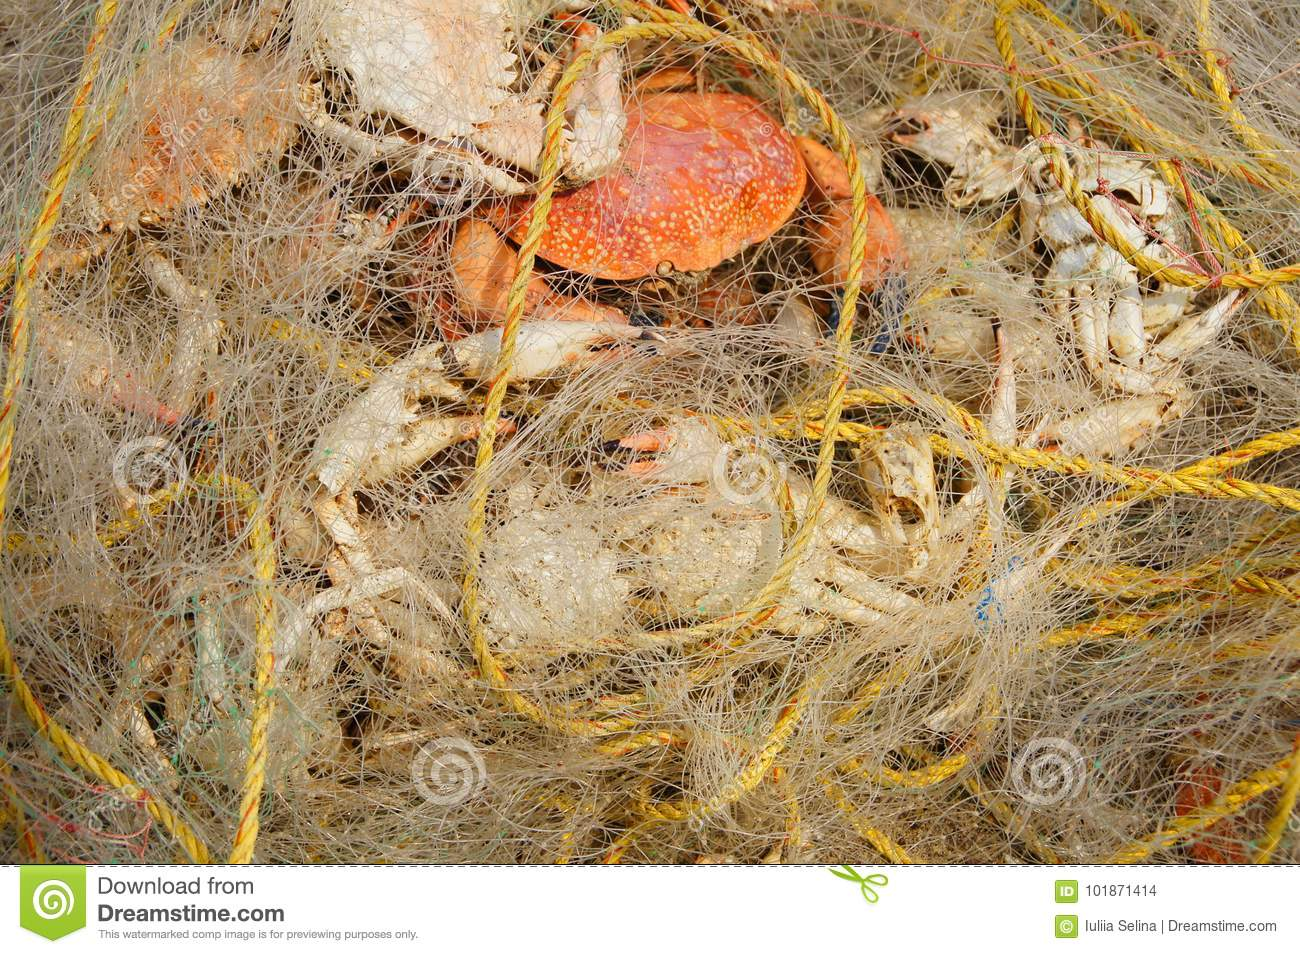 Crabs in the fishing net